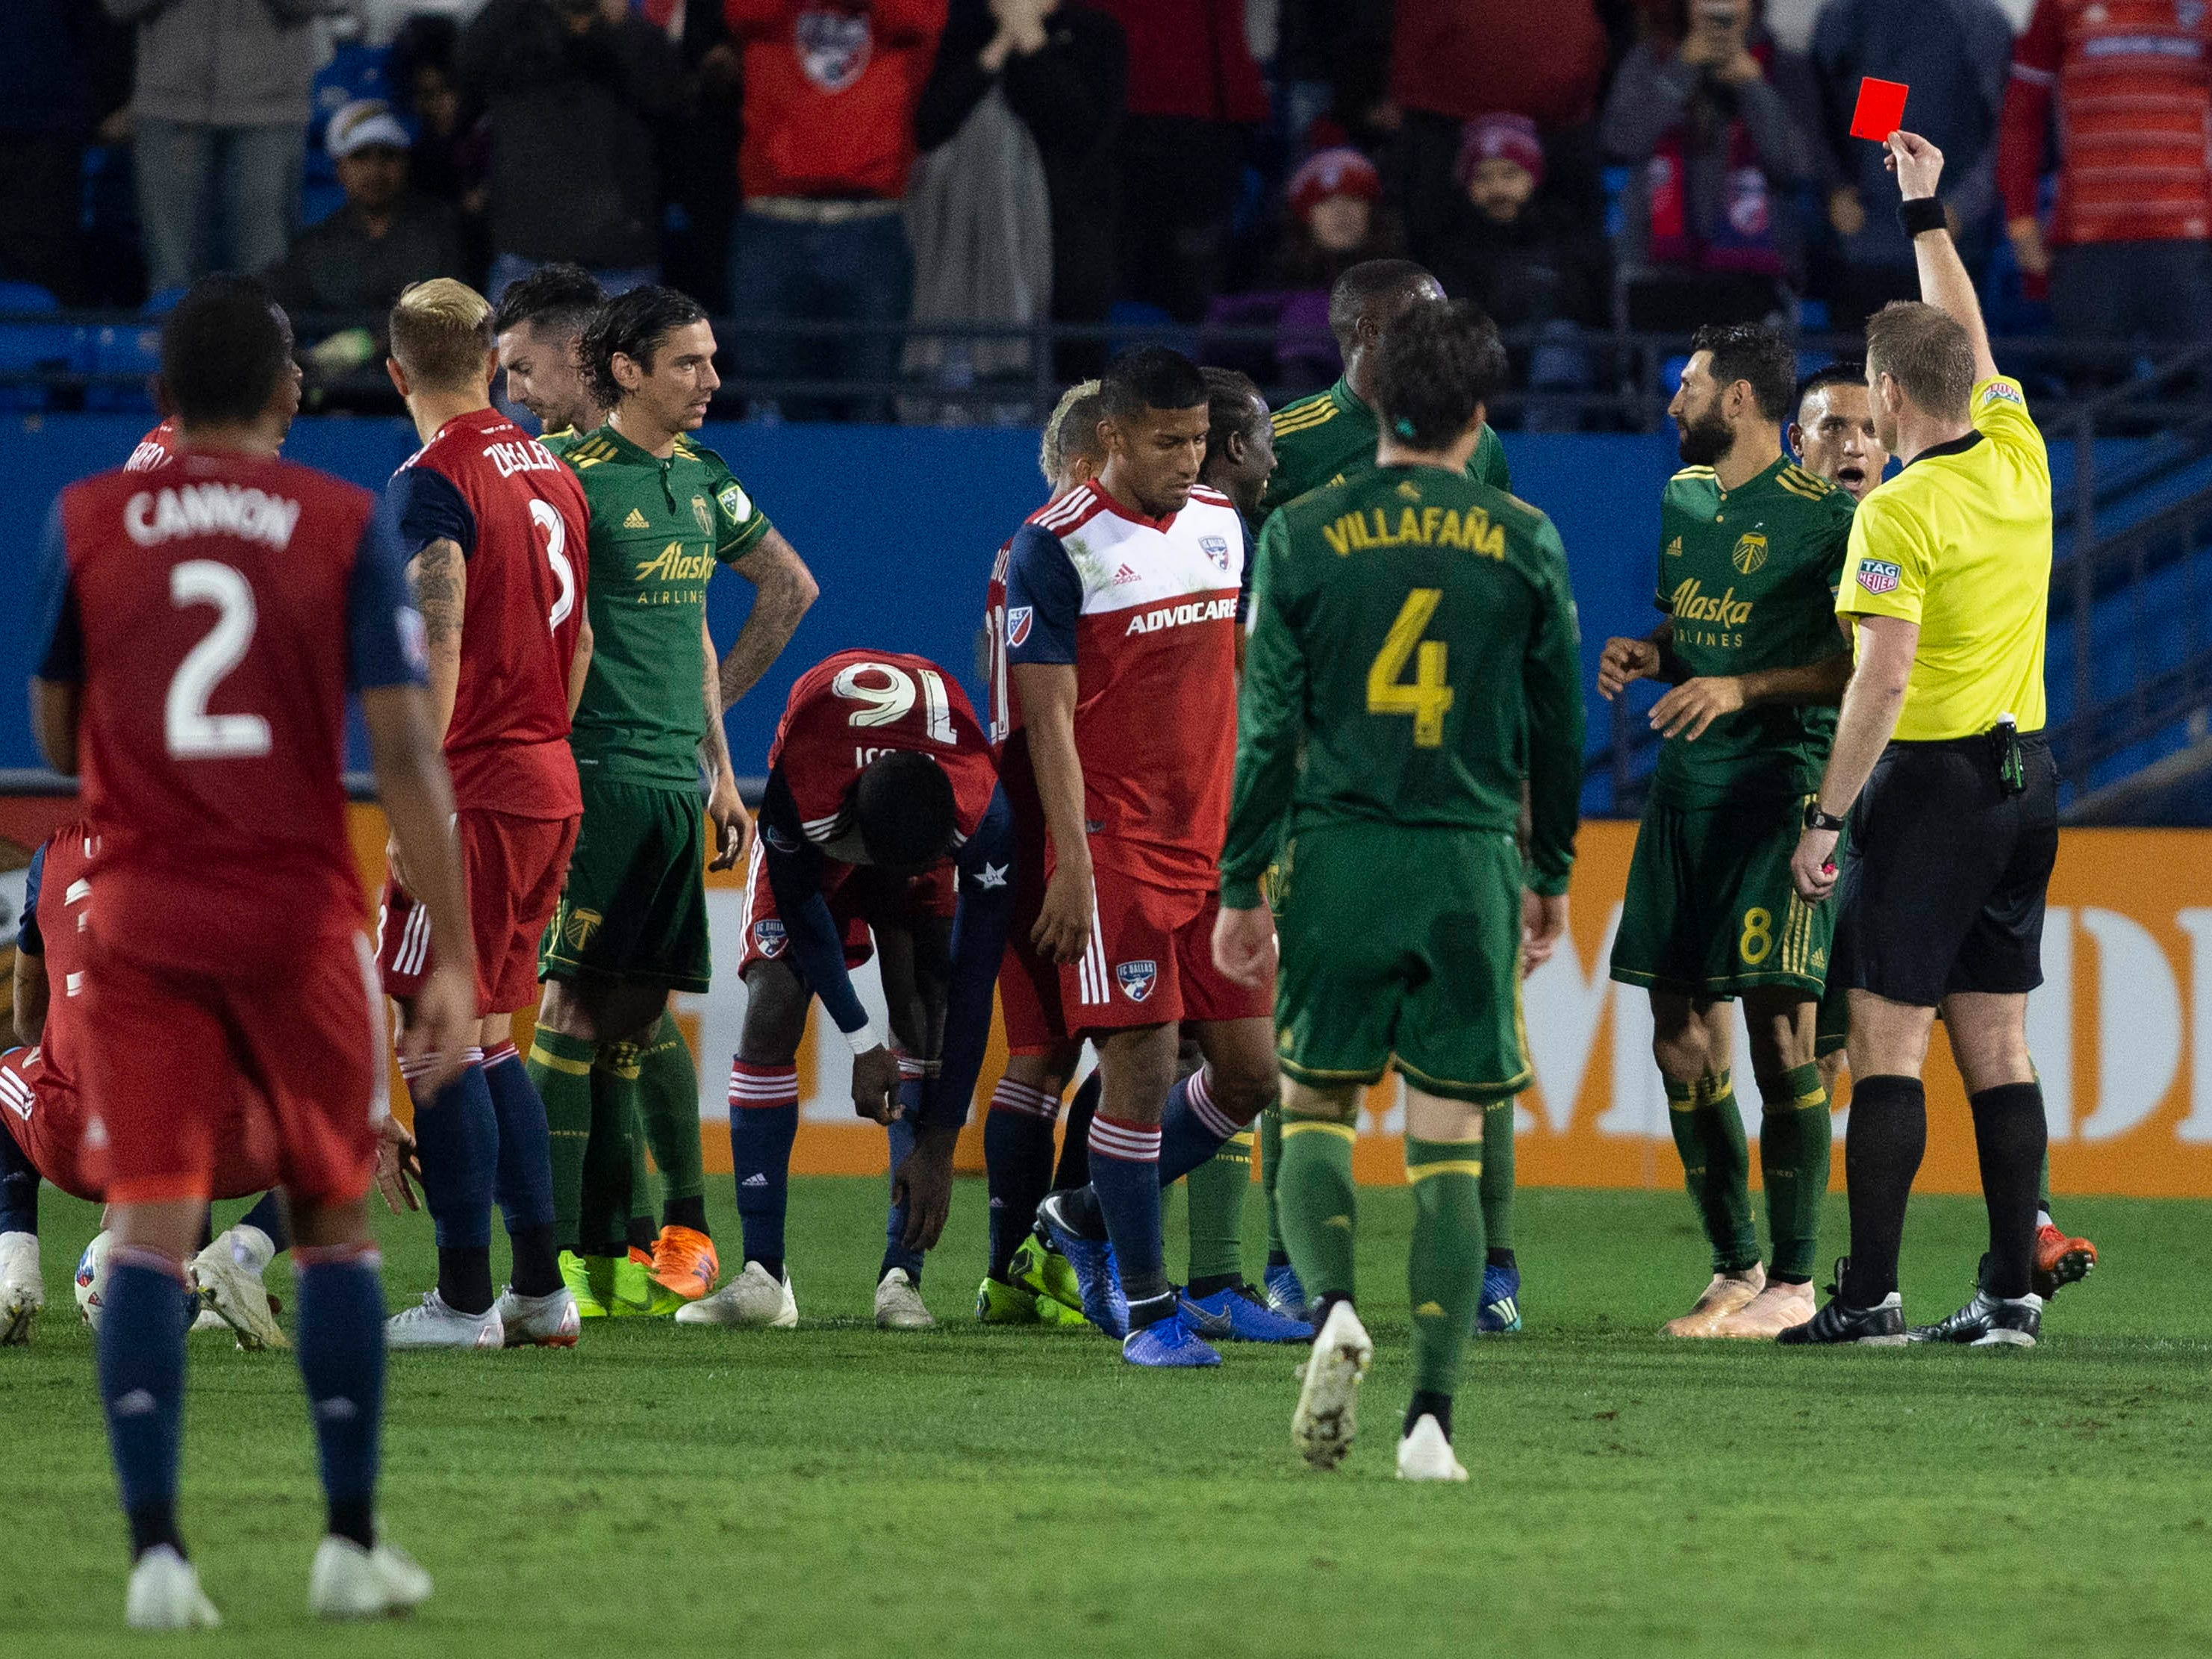 Referee Alan Kelly hands out a red card to Portland Timbers defender Larrys Mabiala in the second half against FC Dallas at Toyota Stadium.